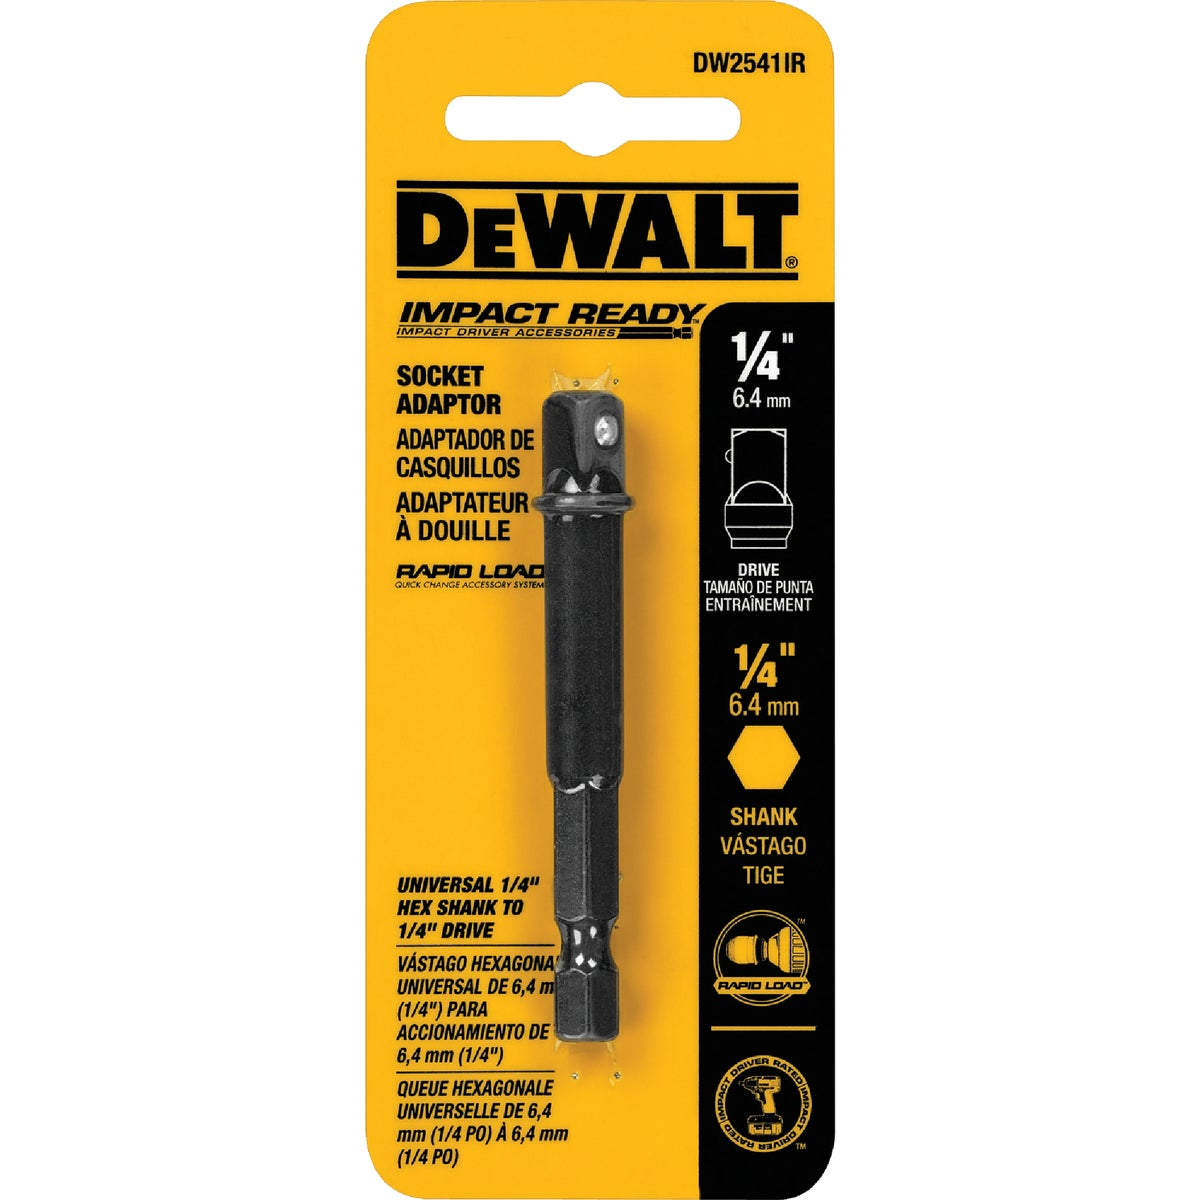 "1/4"" IR SOCKET ADAPTER - DW2541IR by DeWalt"